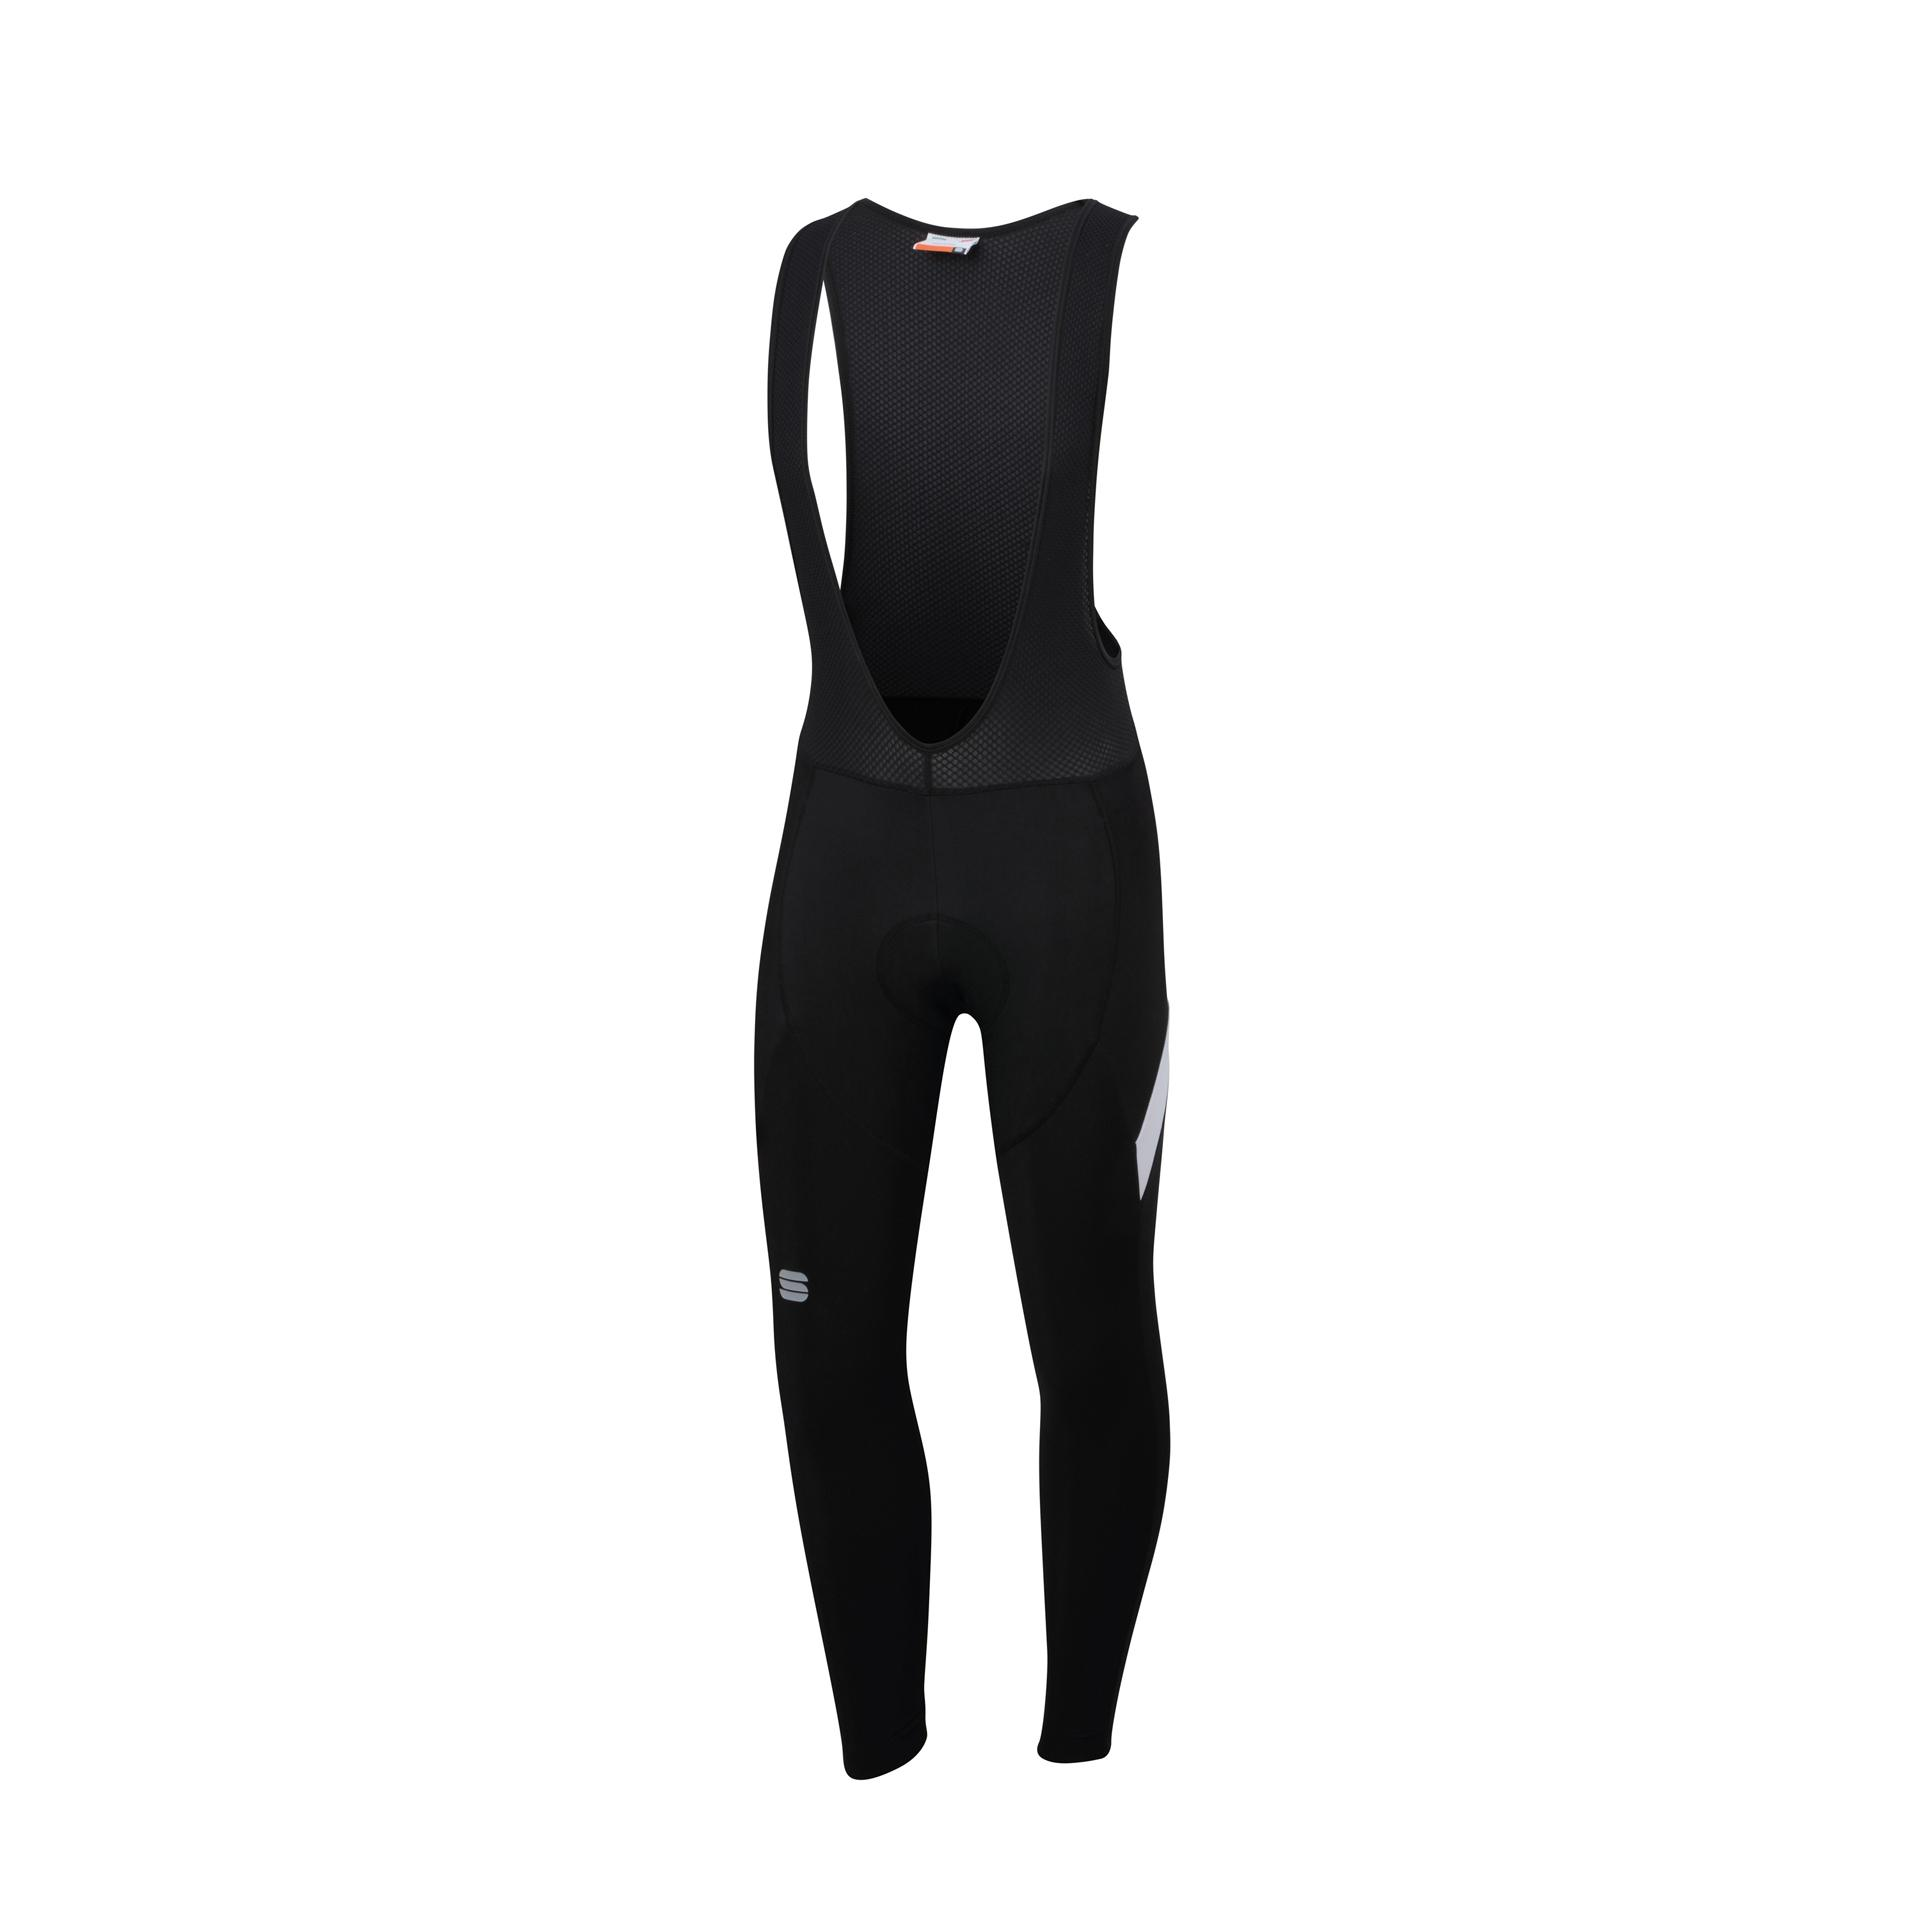 Sportful Fietsbroek lang met bretels Heren Zwart Wit / Neo Bibtight-Black/White